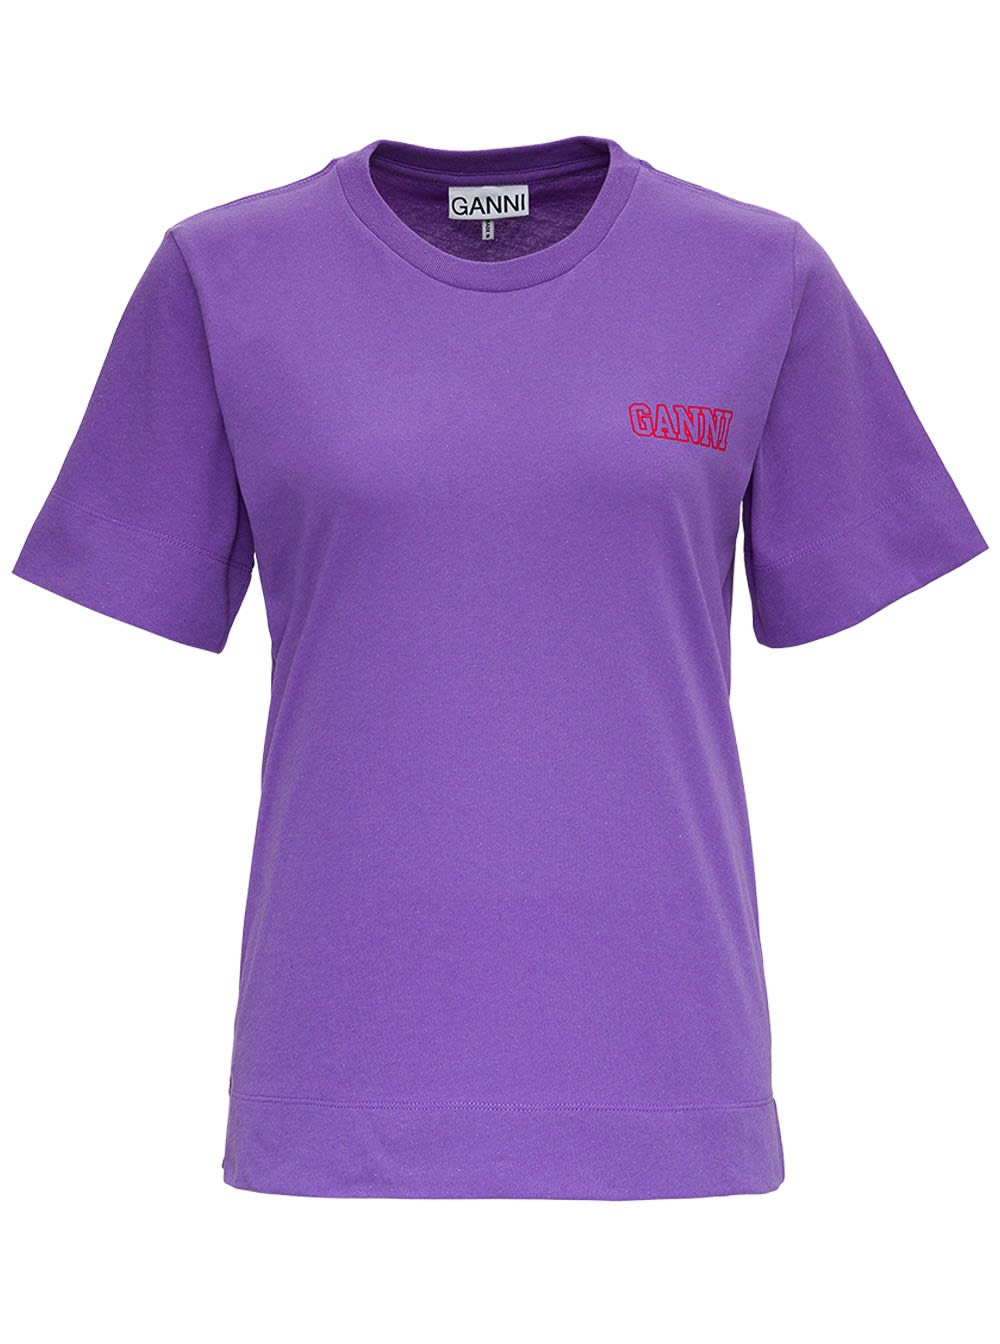 Ganni Thin Software Recycled Jersey T-shirt In Violet